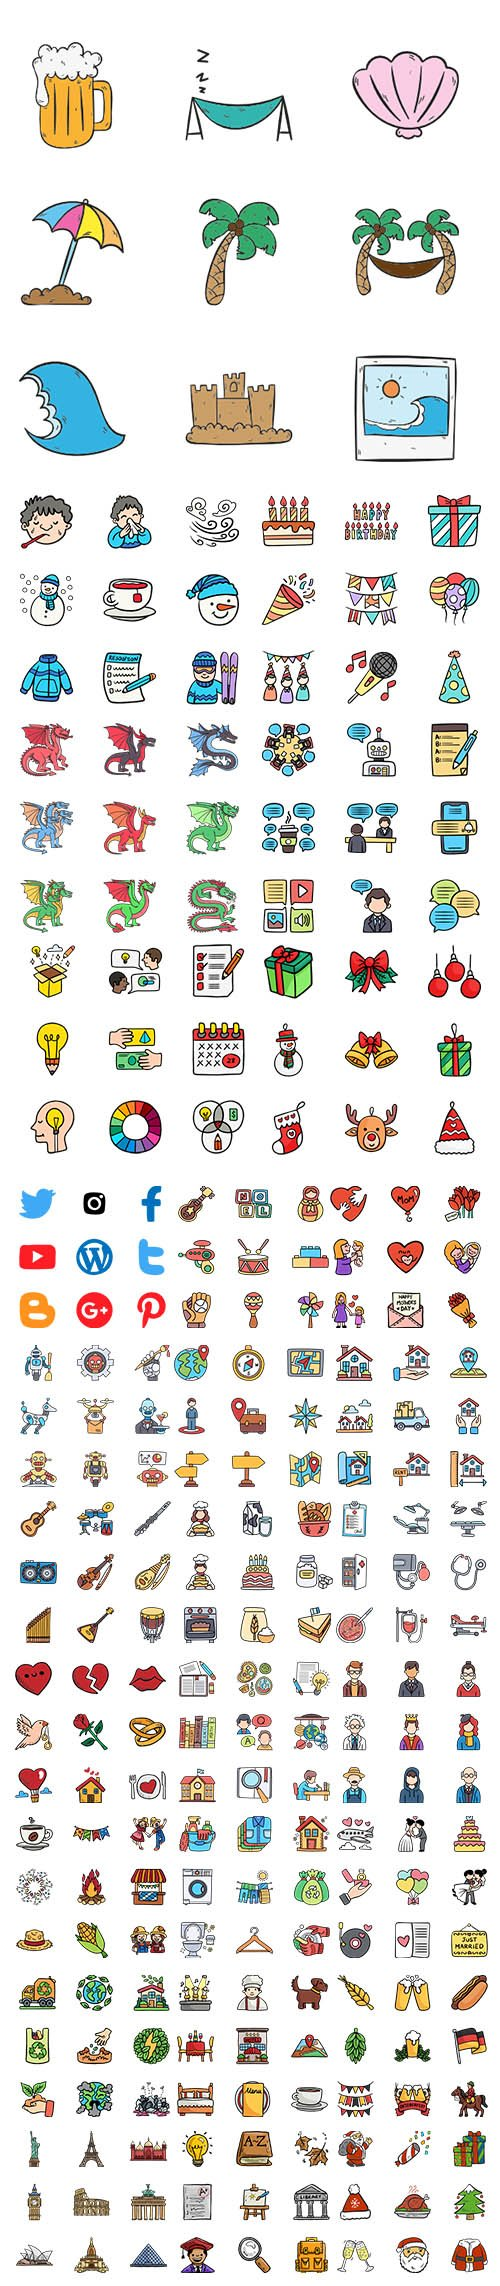 1500+ Hand Draw Color Icons Set